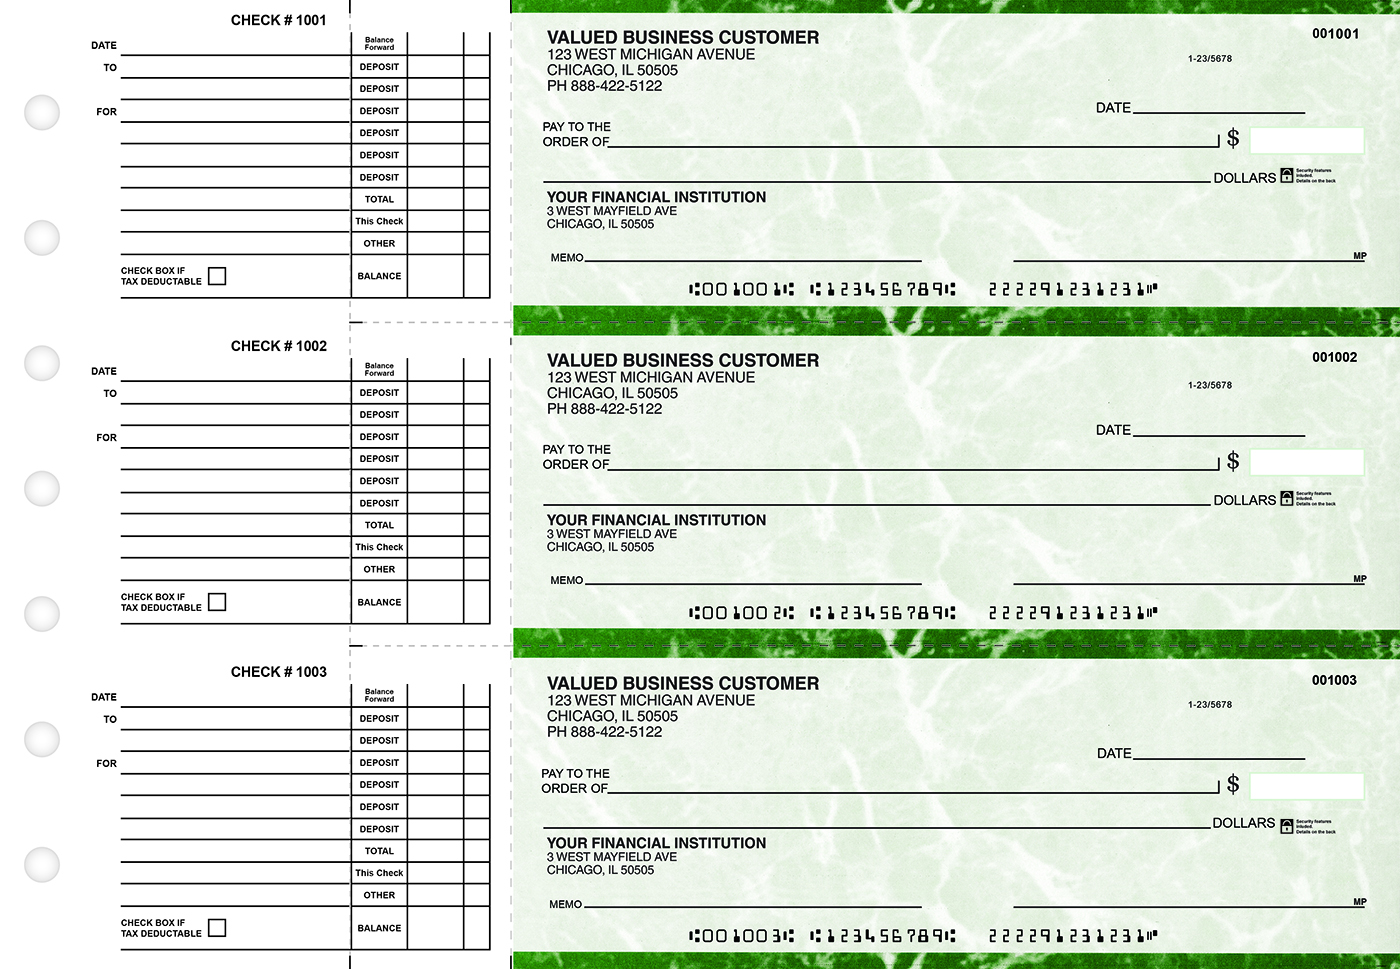 Green Marble Accounts Payable Business Checks - 1